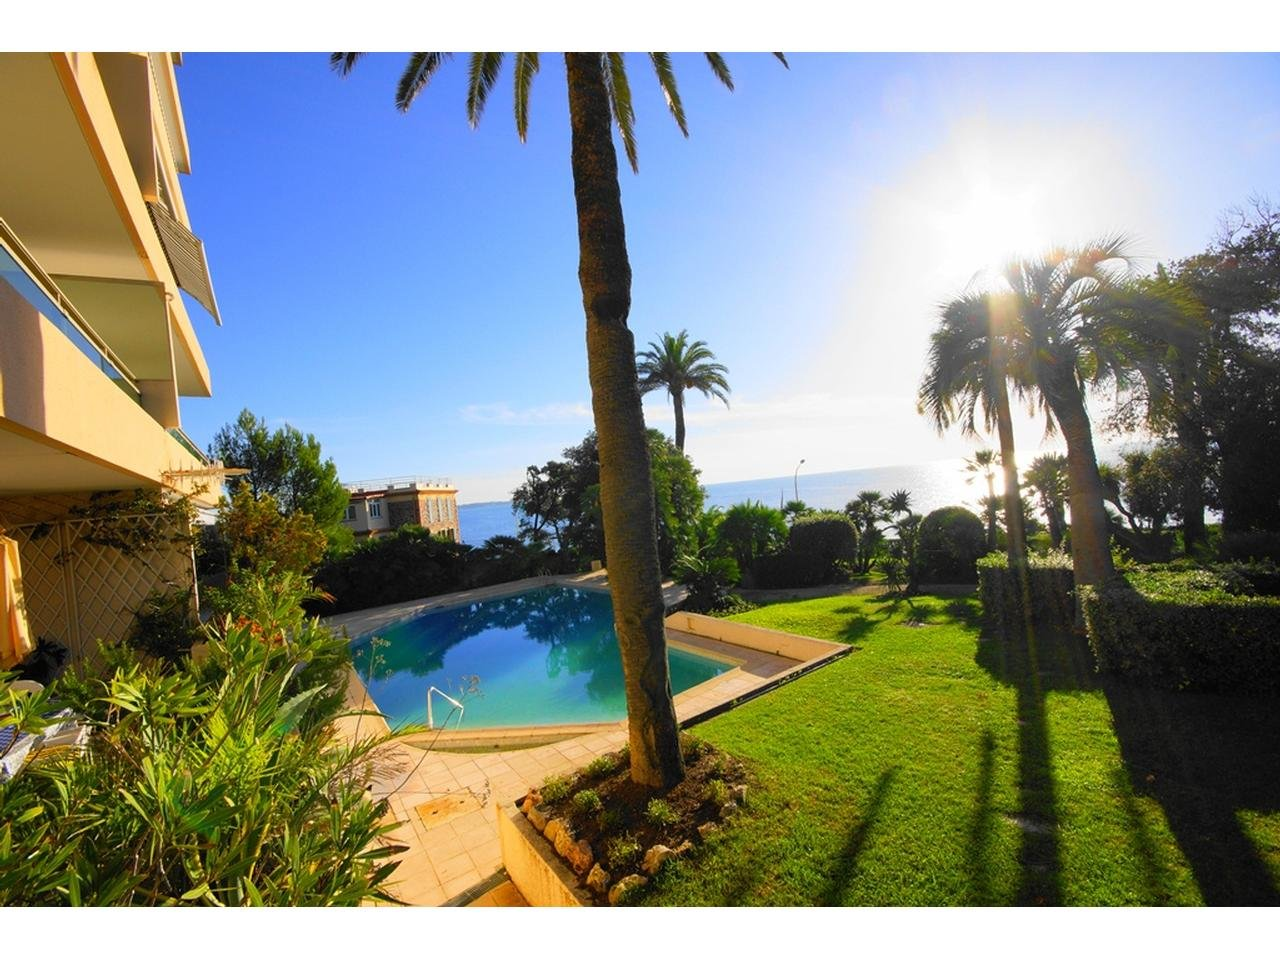 Cannes Palm Beach property for sale with swimming pool